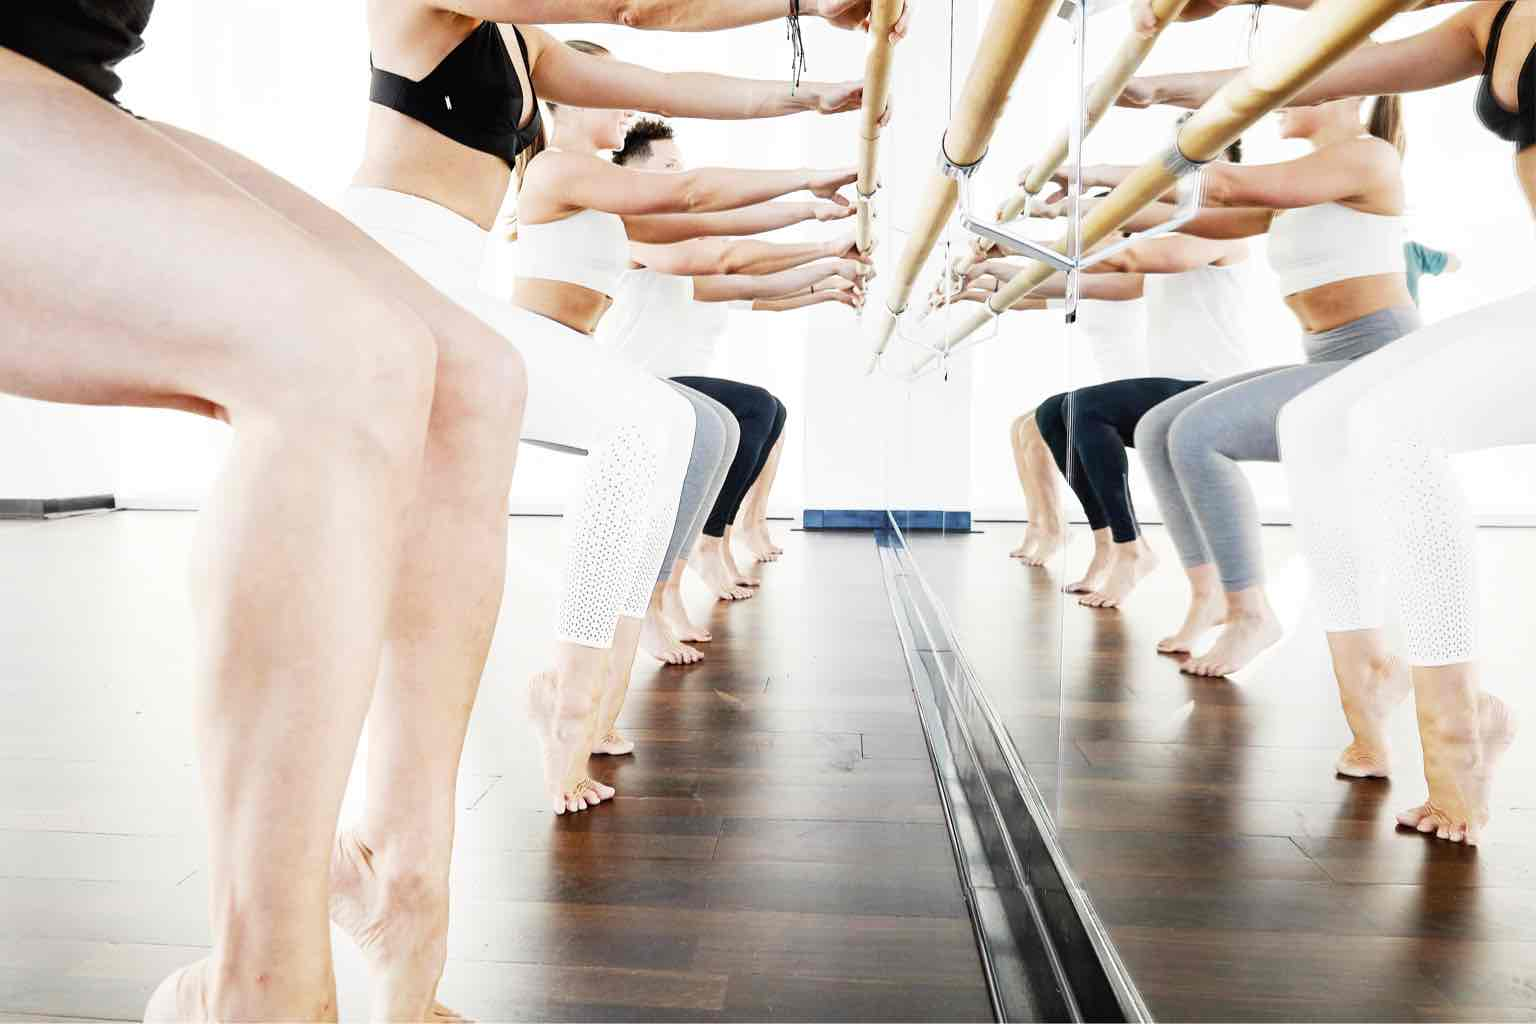 Five women in a row standing on their toes in a sitting position while holding onto a barre attached to a mirrored wall